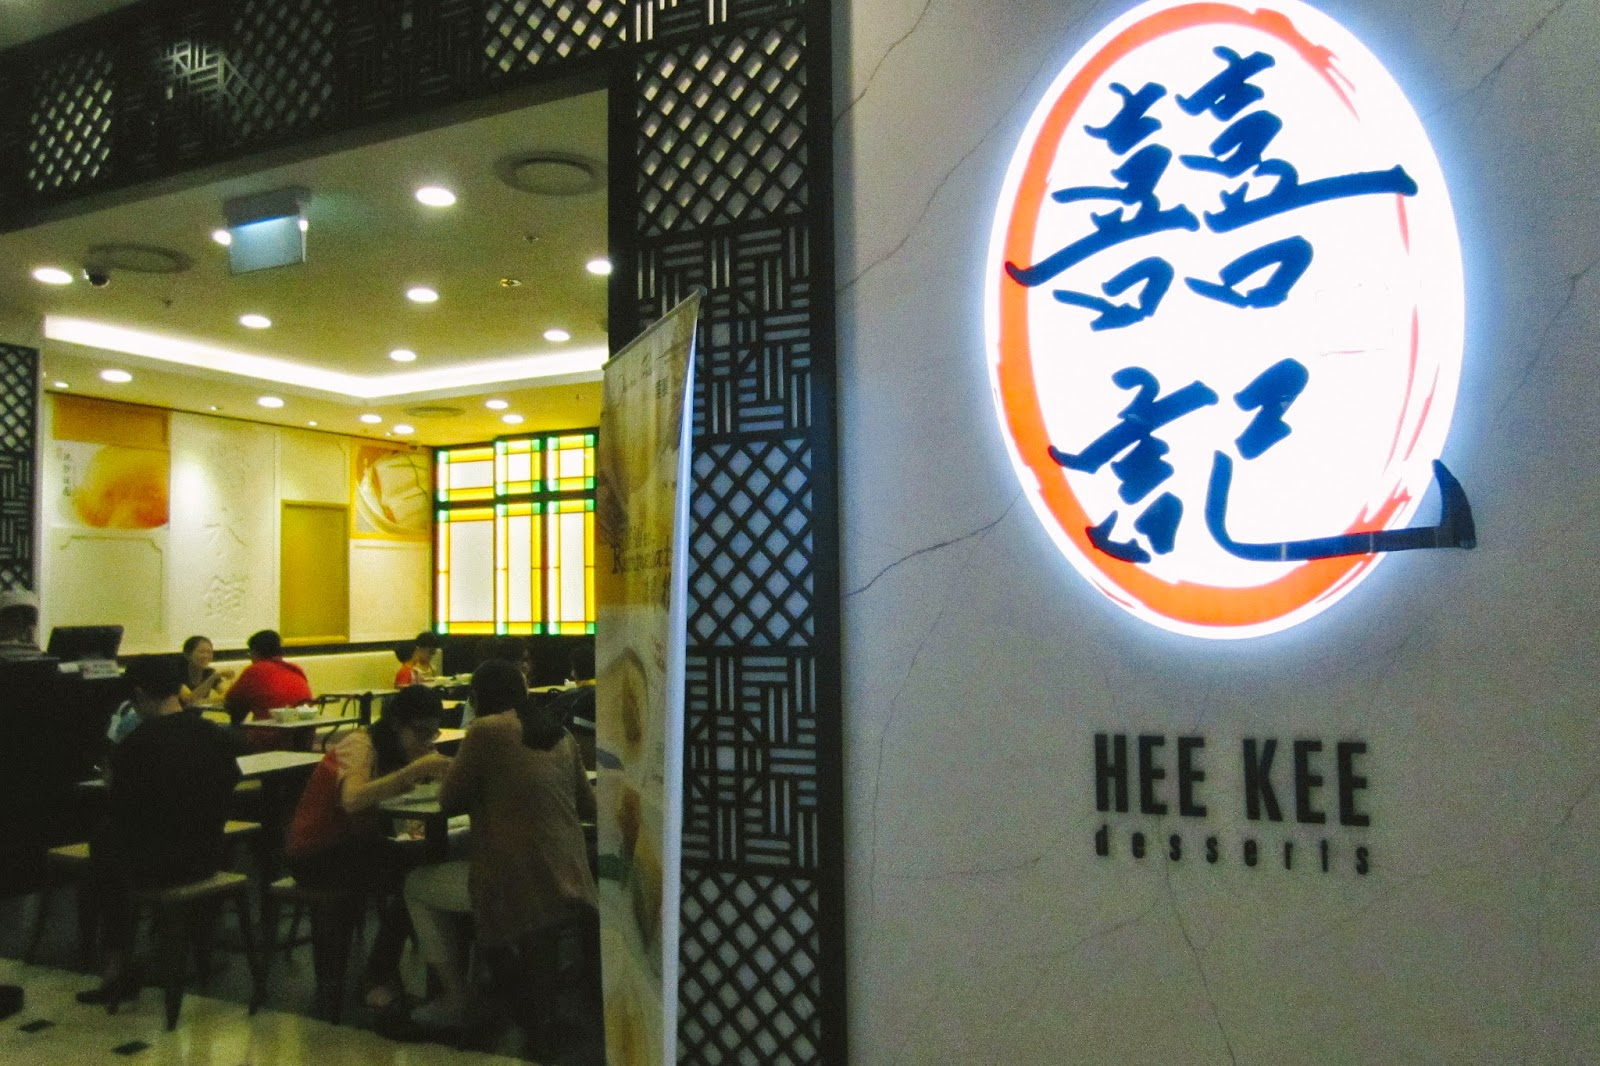 hee kee store location